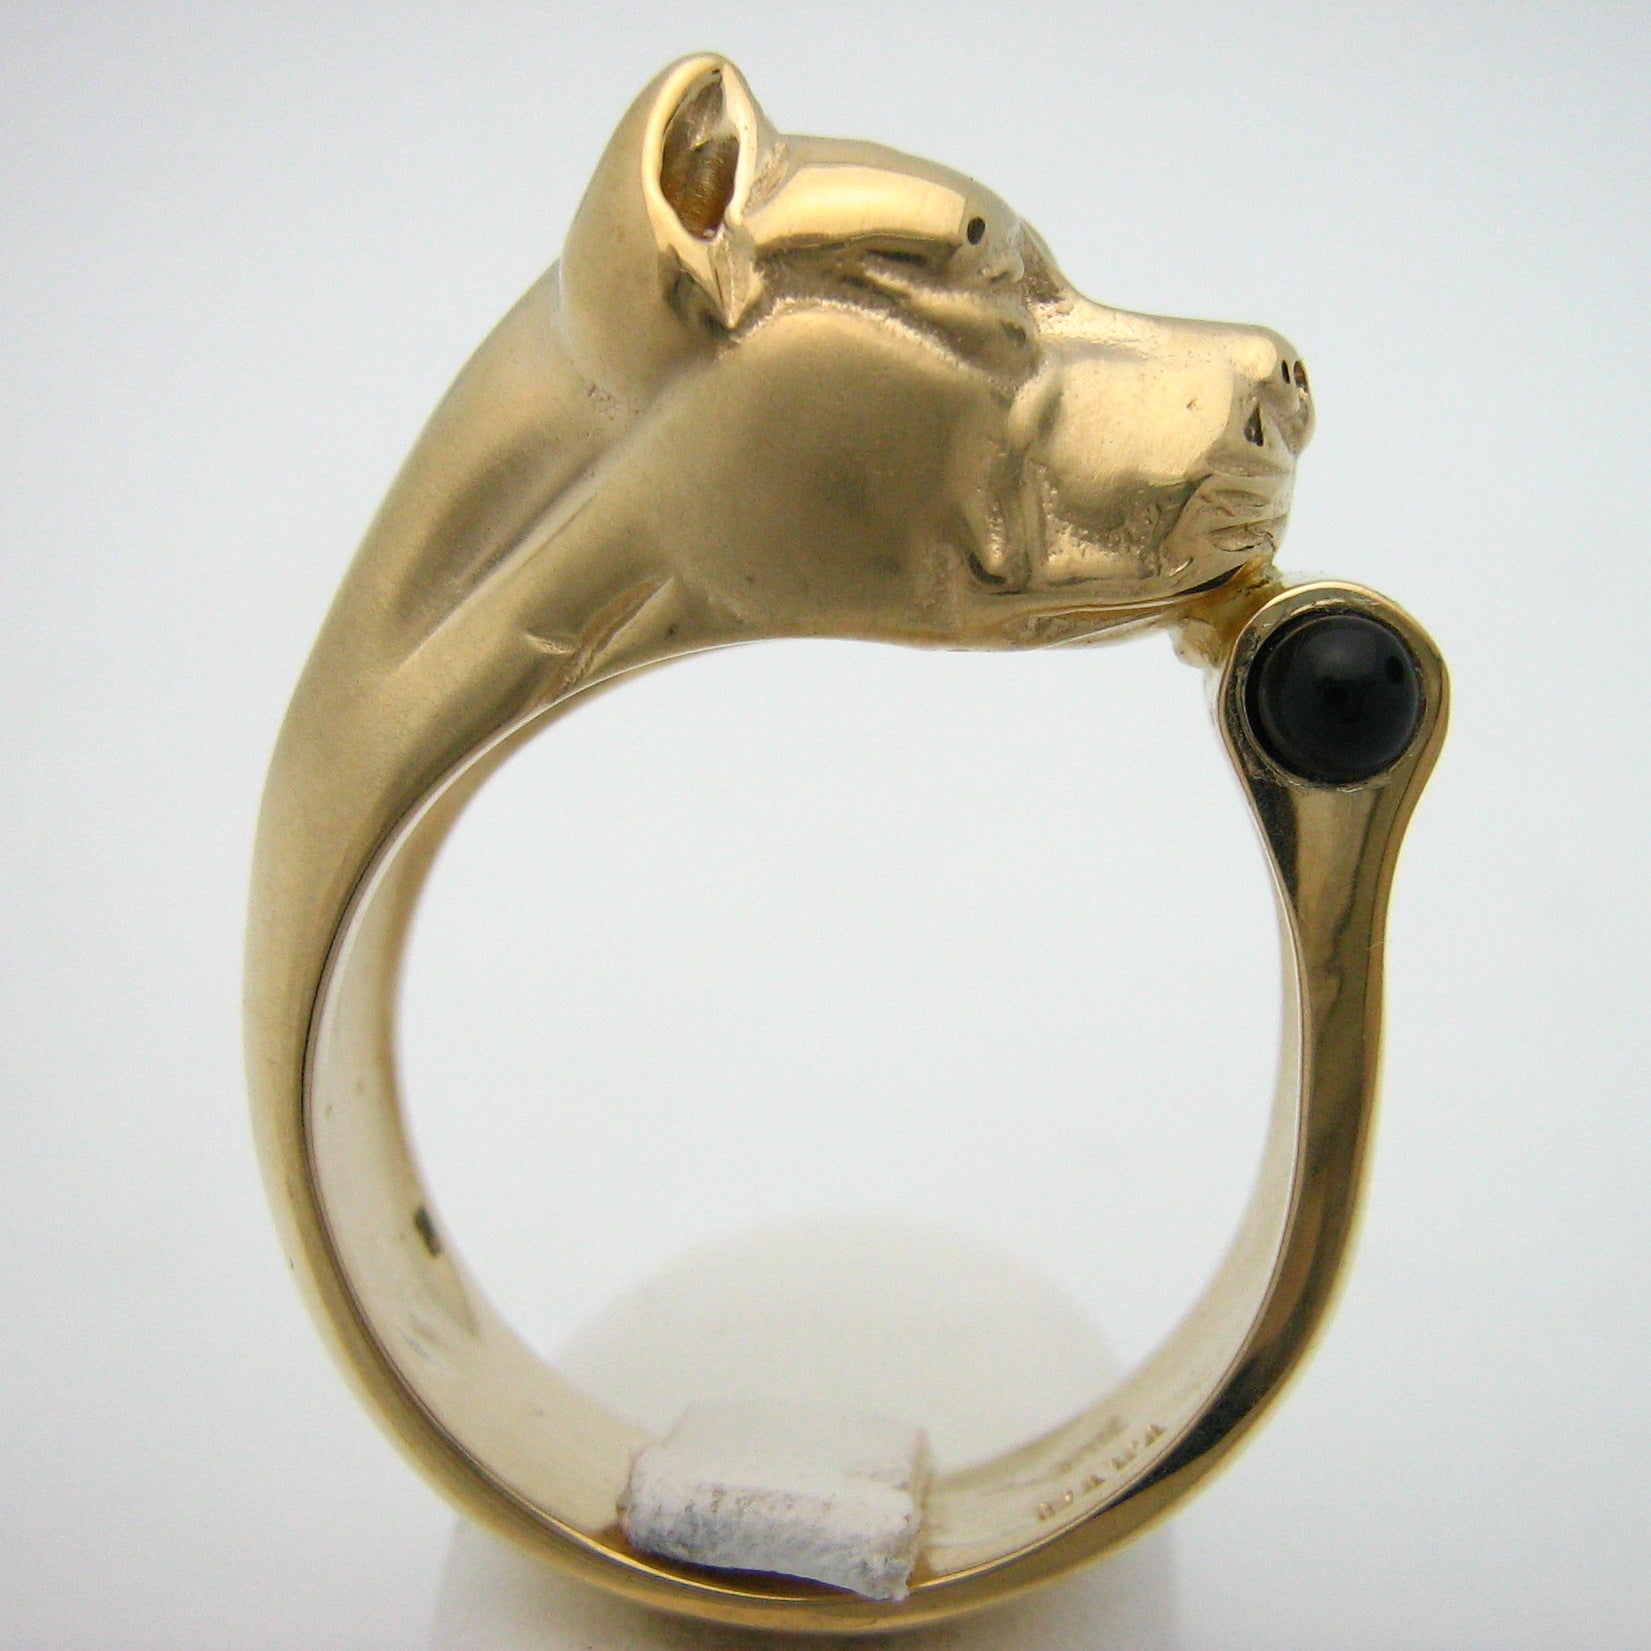 The Pitbull Ring